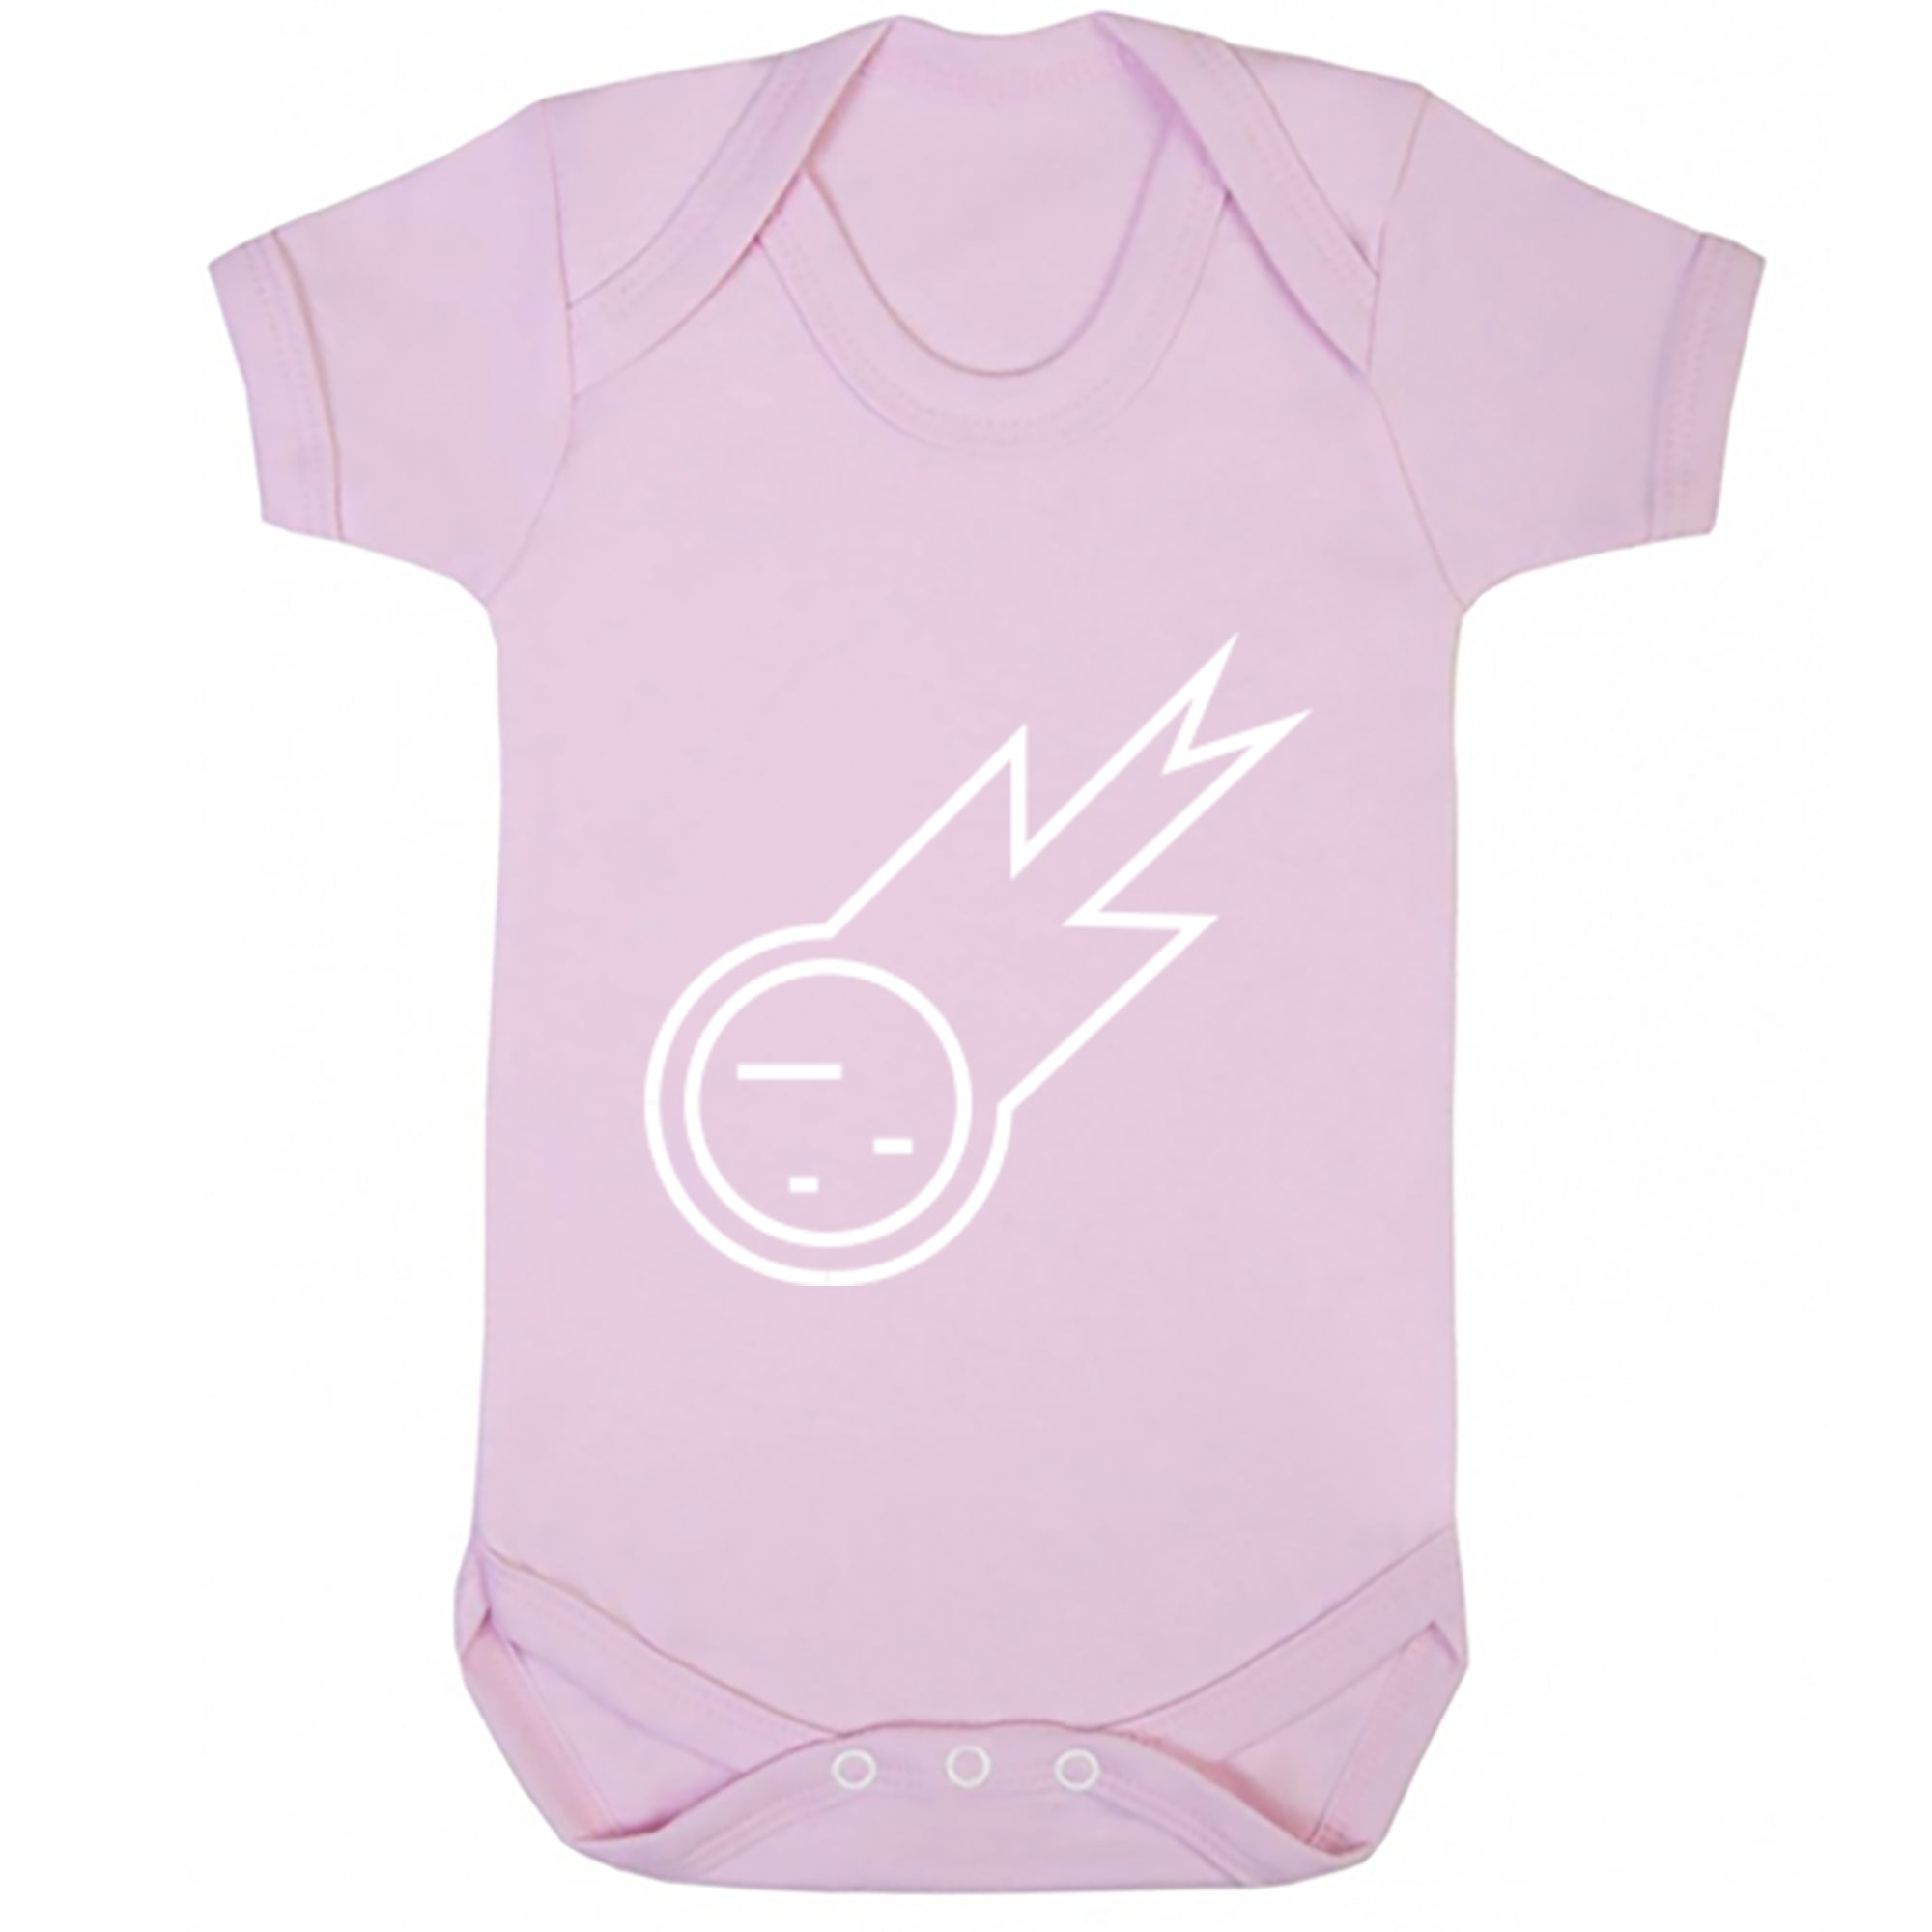 Asteroid Baby Vest S0355 - Illustrated Identity Ltd.